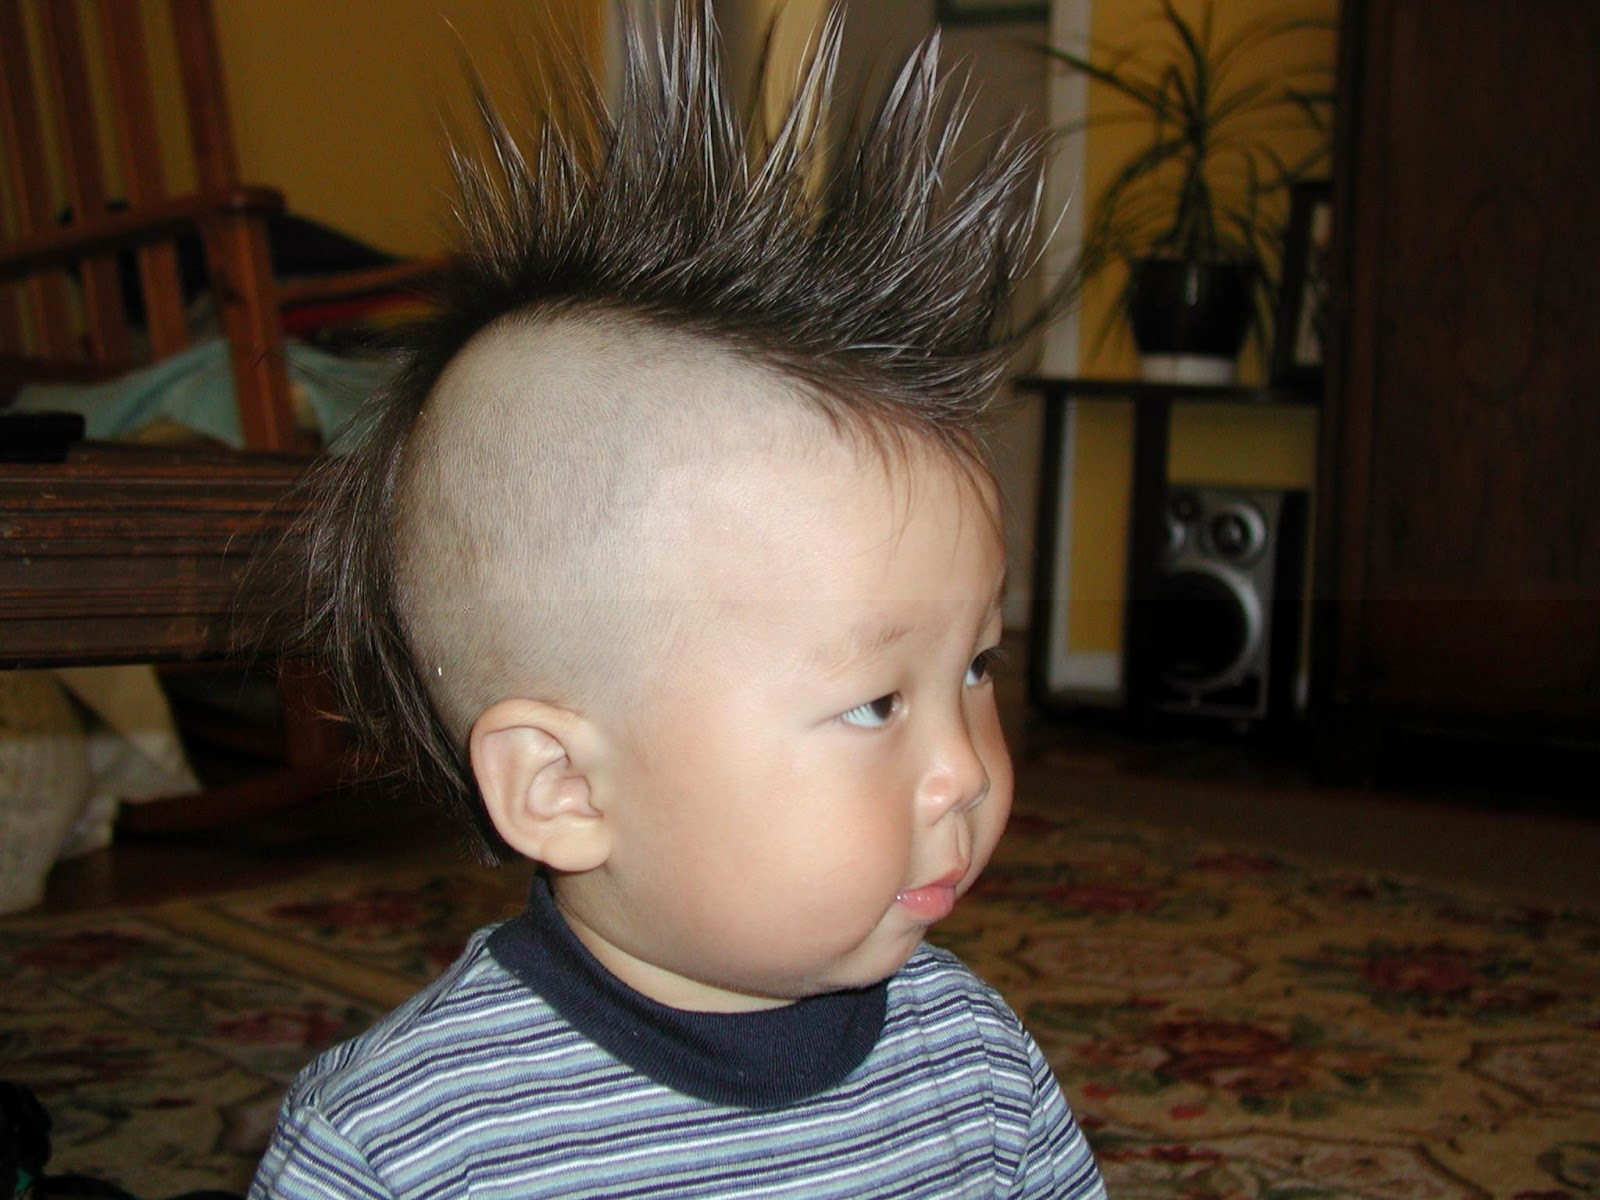 Stupendous Kids Hairstyle Amazing Amp Trendy Hairstyles For Boys Calgary Hairstyle Inspiration Daily Dogsangcom